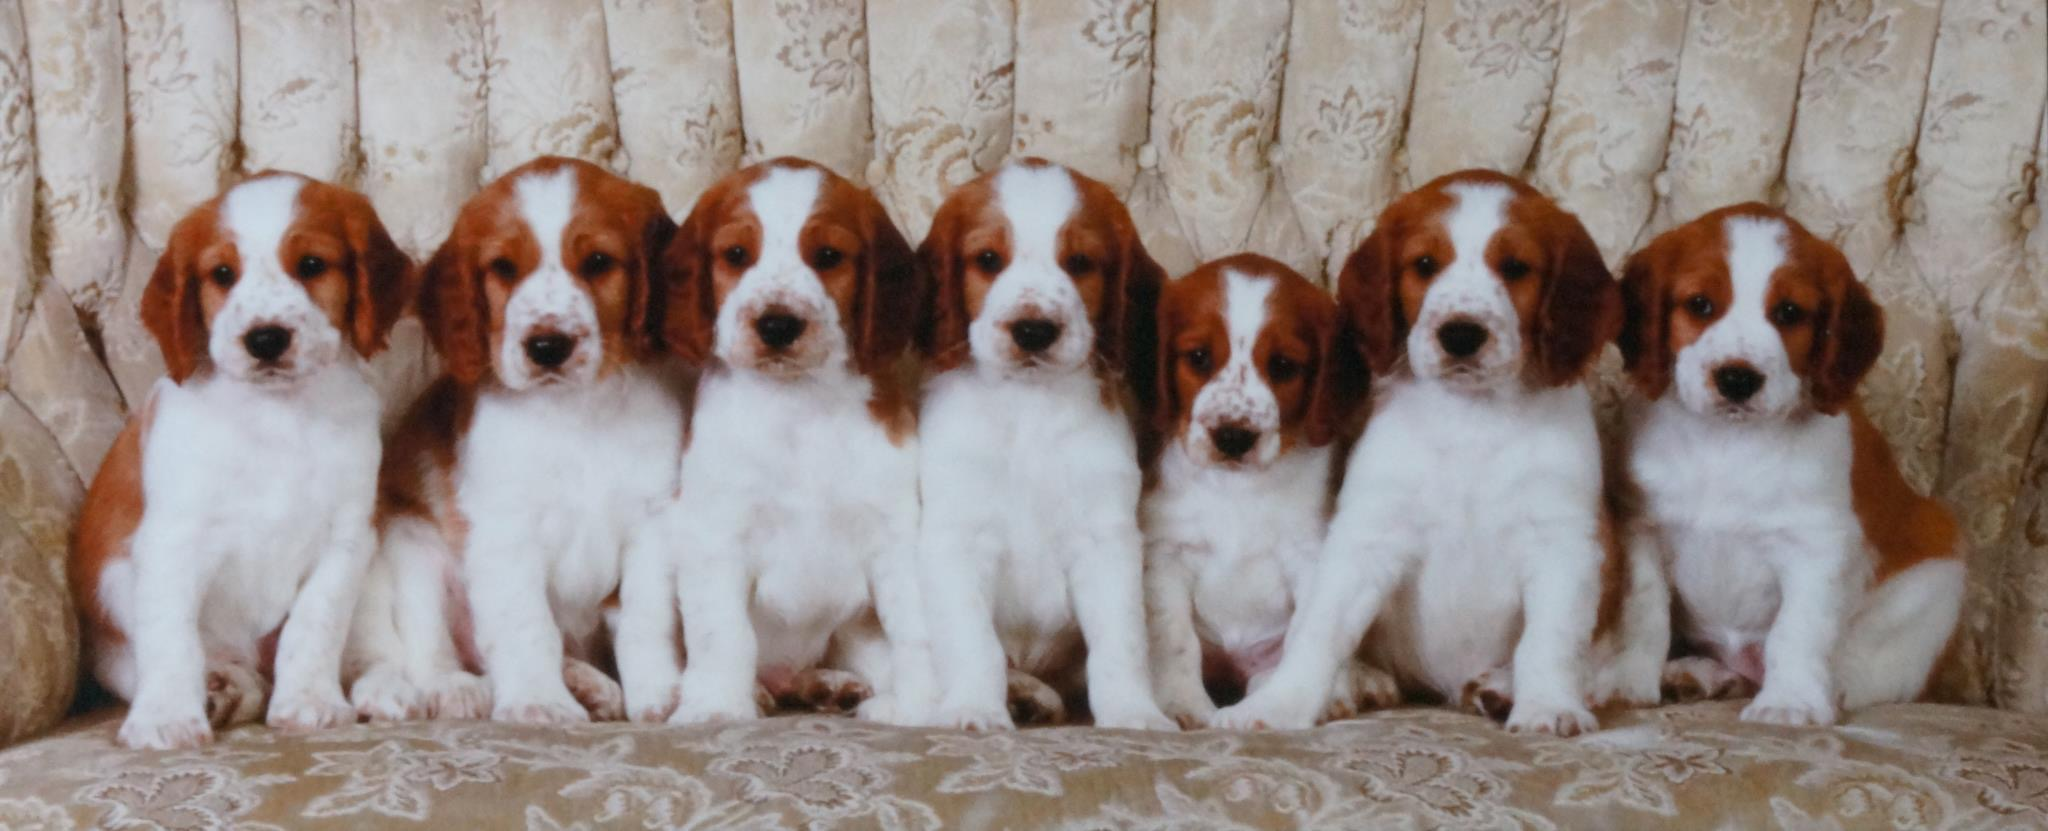 The 'Promise' Litter, April 2012